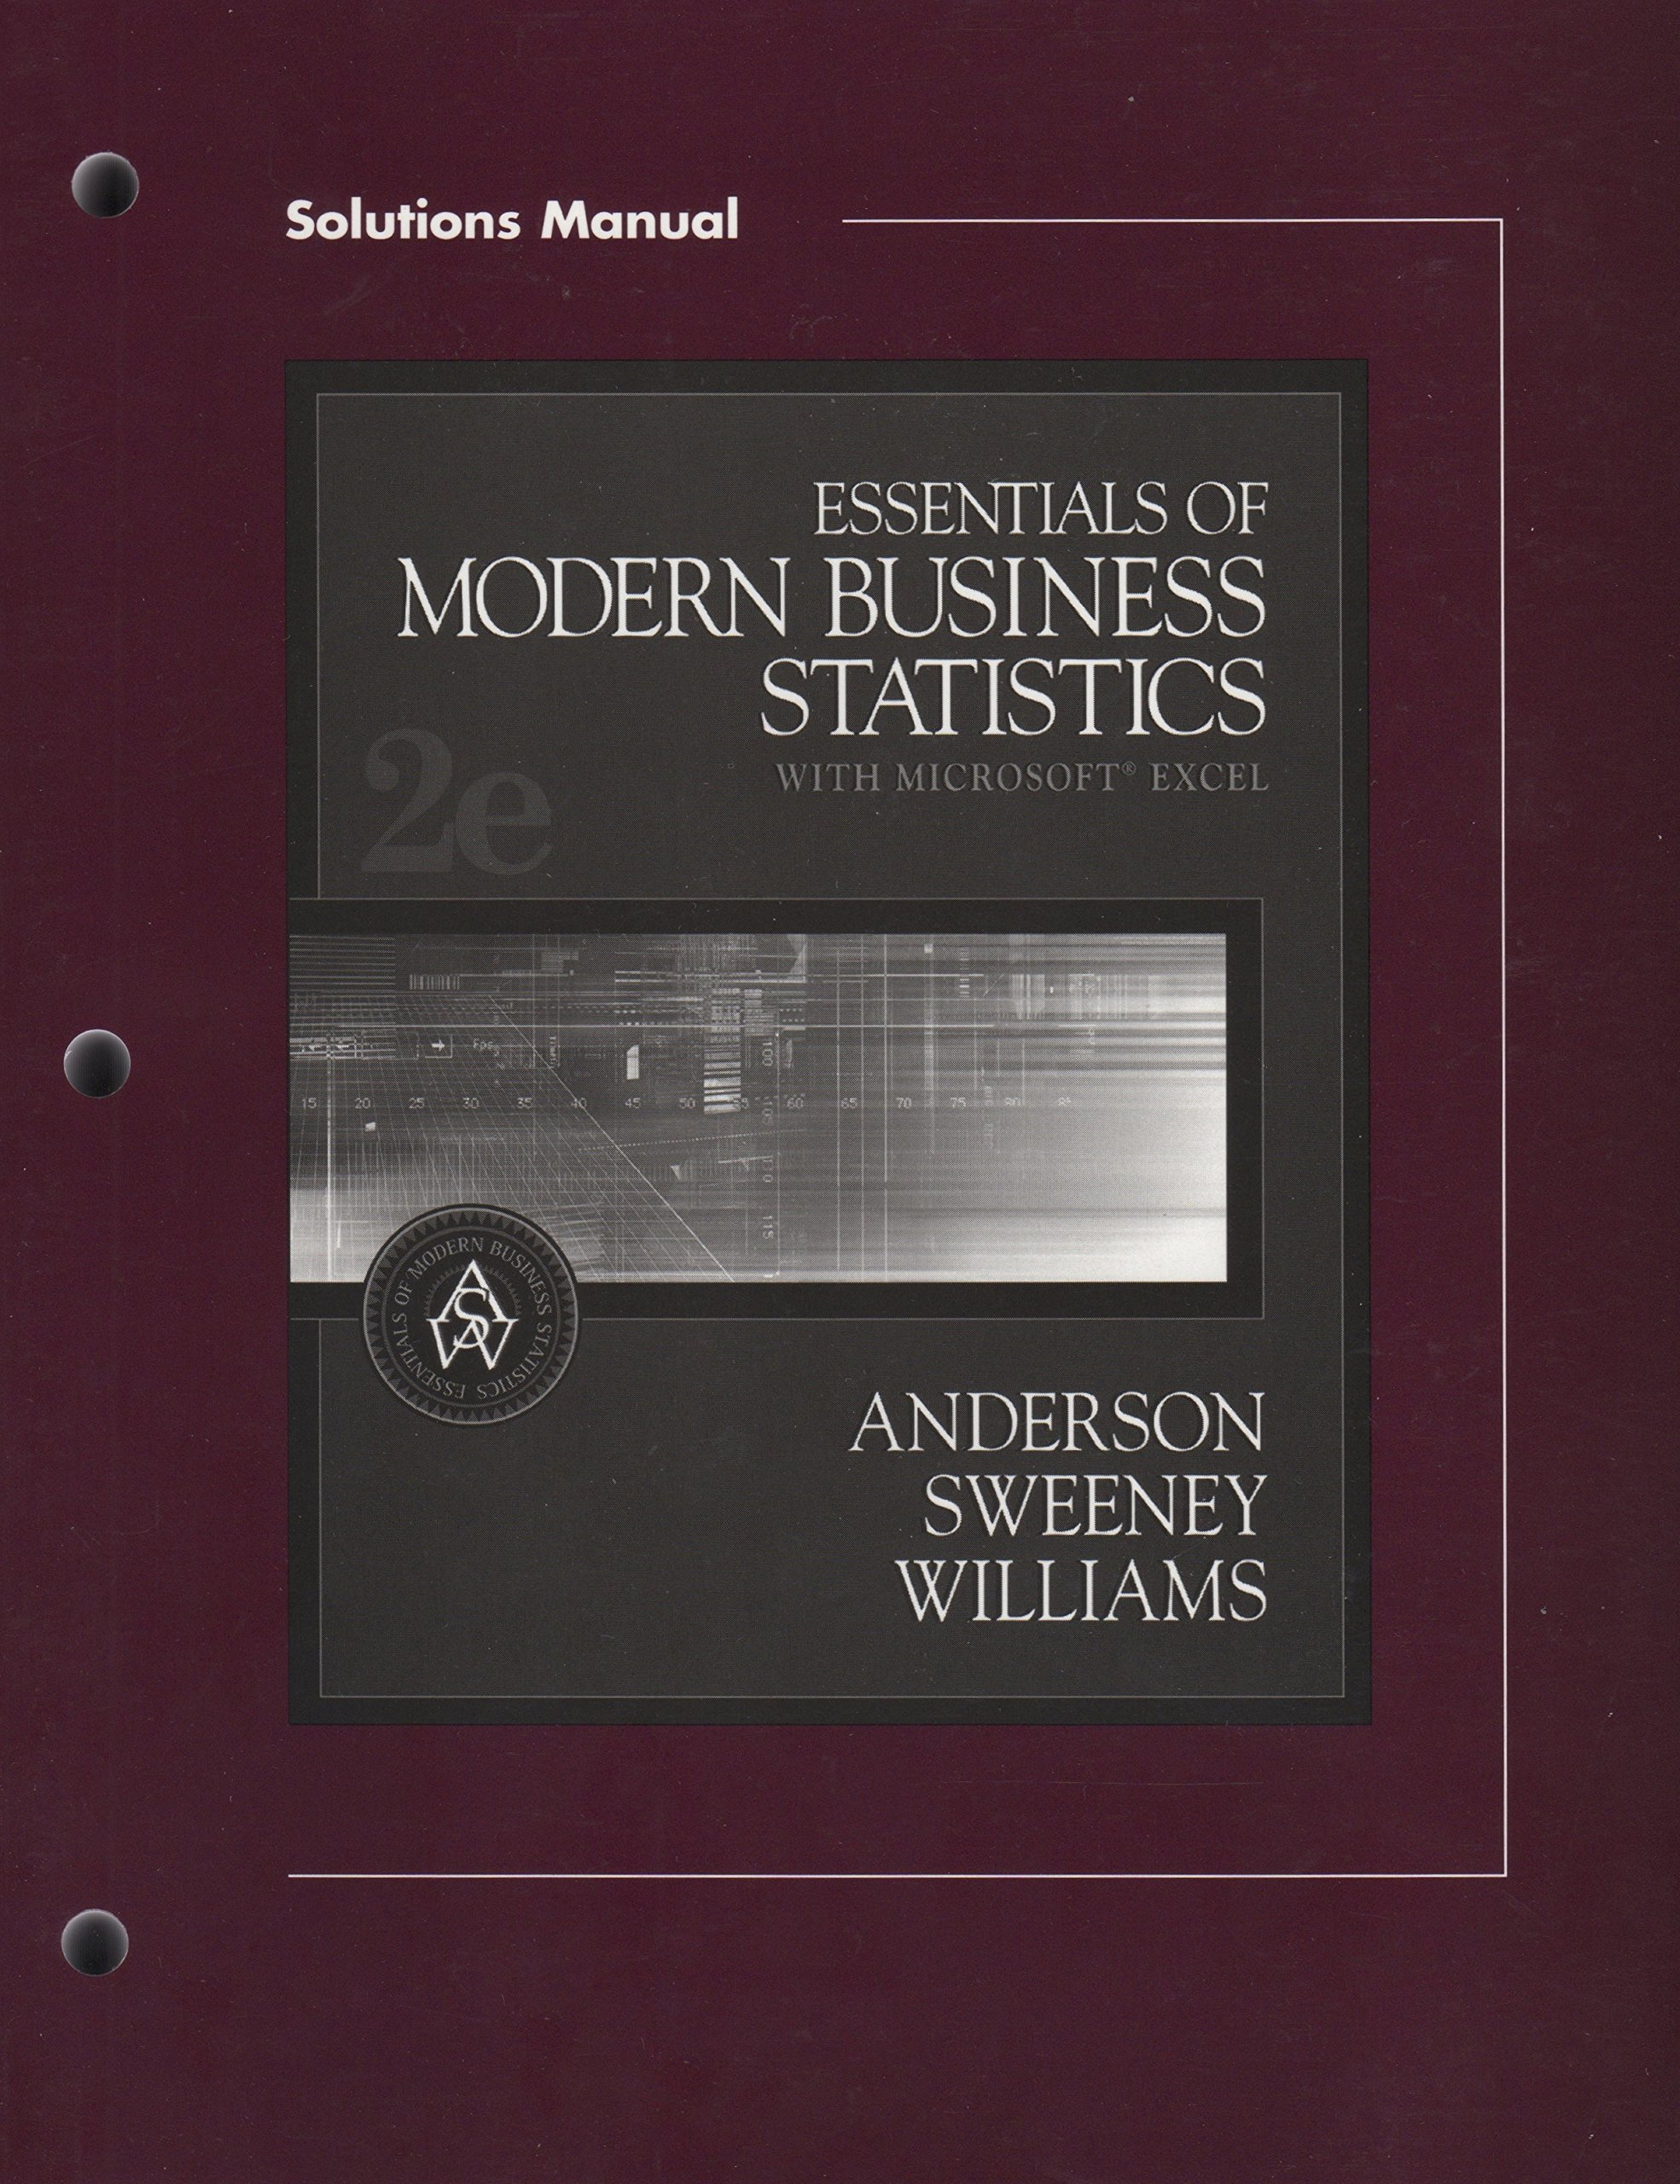 Solutions Manual Essentials of Business Statistics: Anderson Sweeney  Williams: 9780324184655: Amazon.com: Books